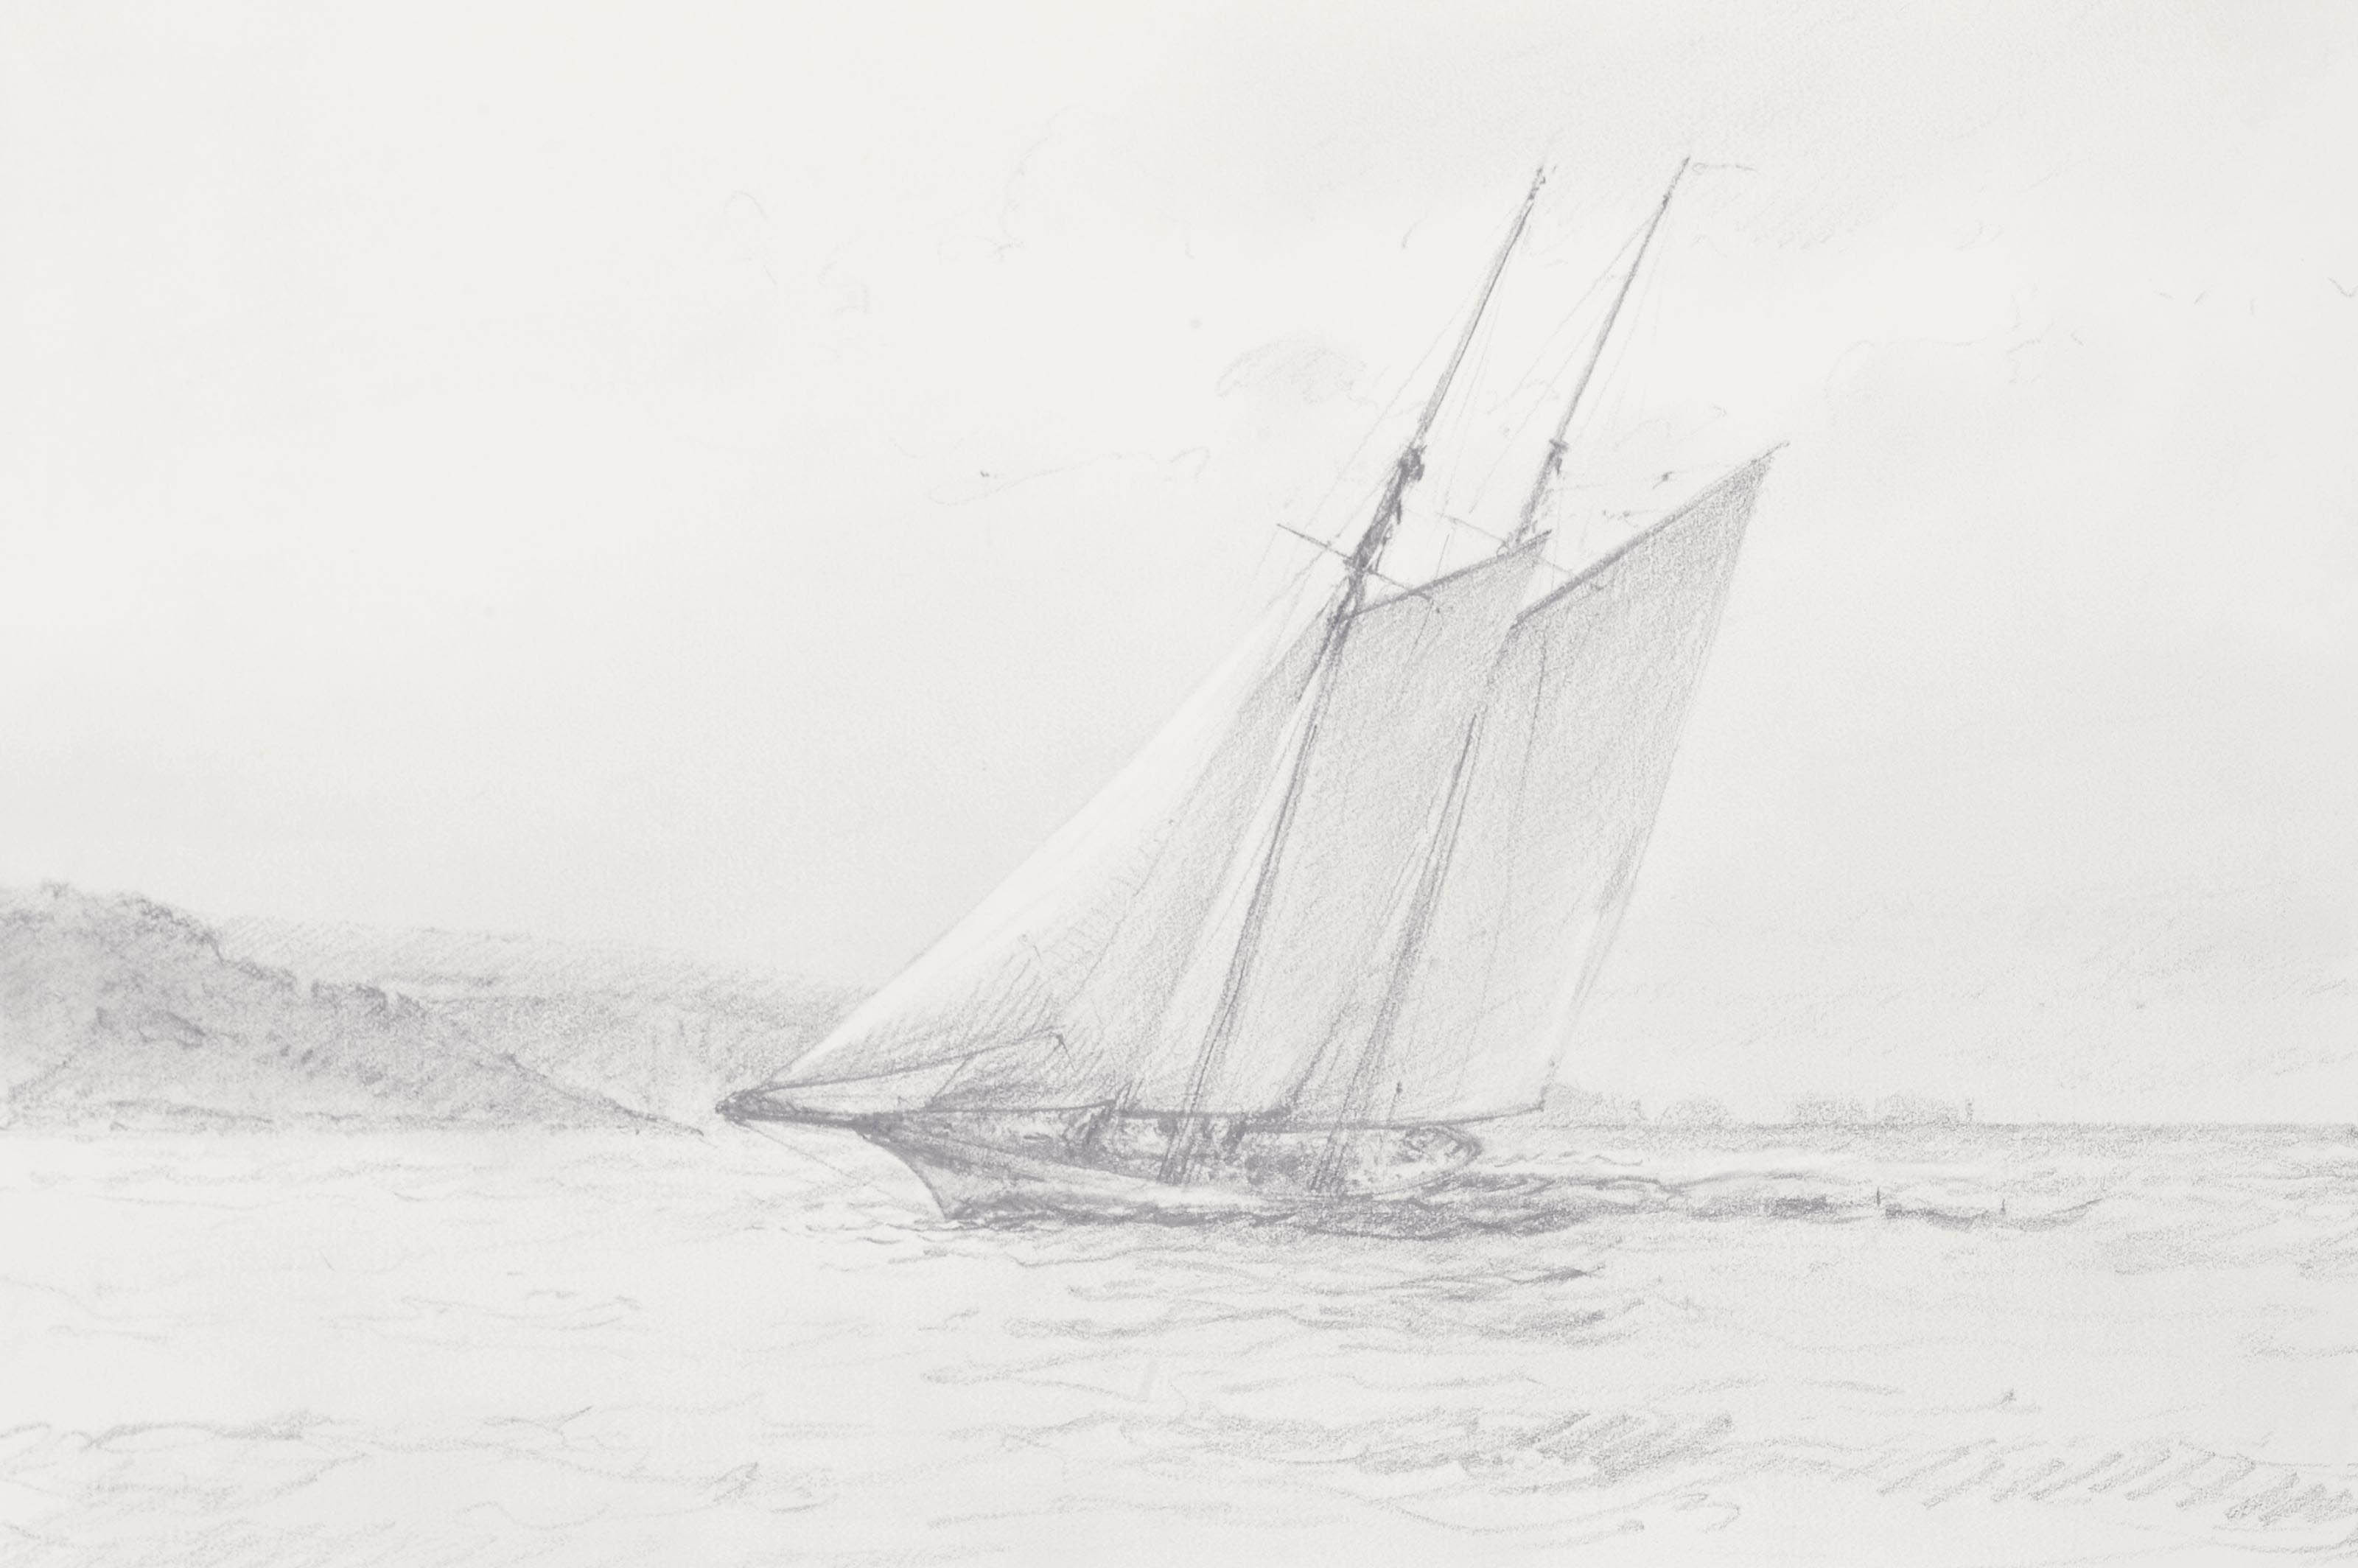 Racing yachts battling for line honours as they approach the Royal Yacht Squadron line; and A schooner reaching in the Solent with the Needles astern (illustrated)